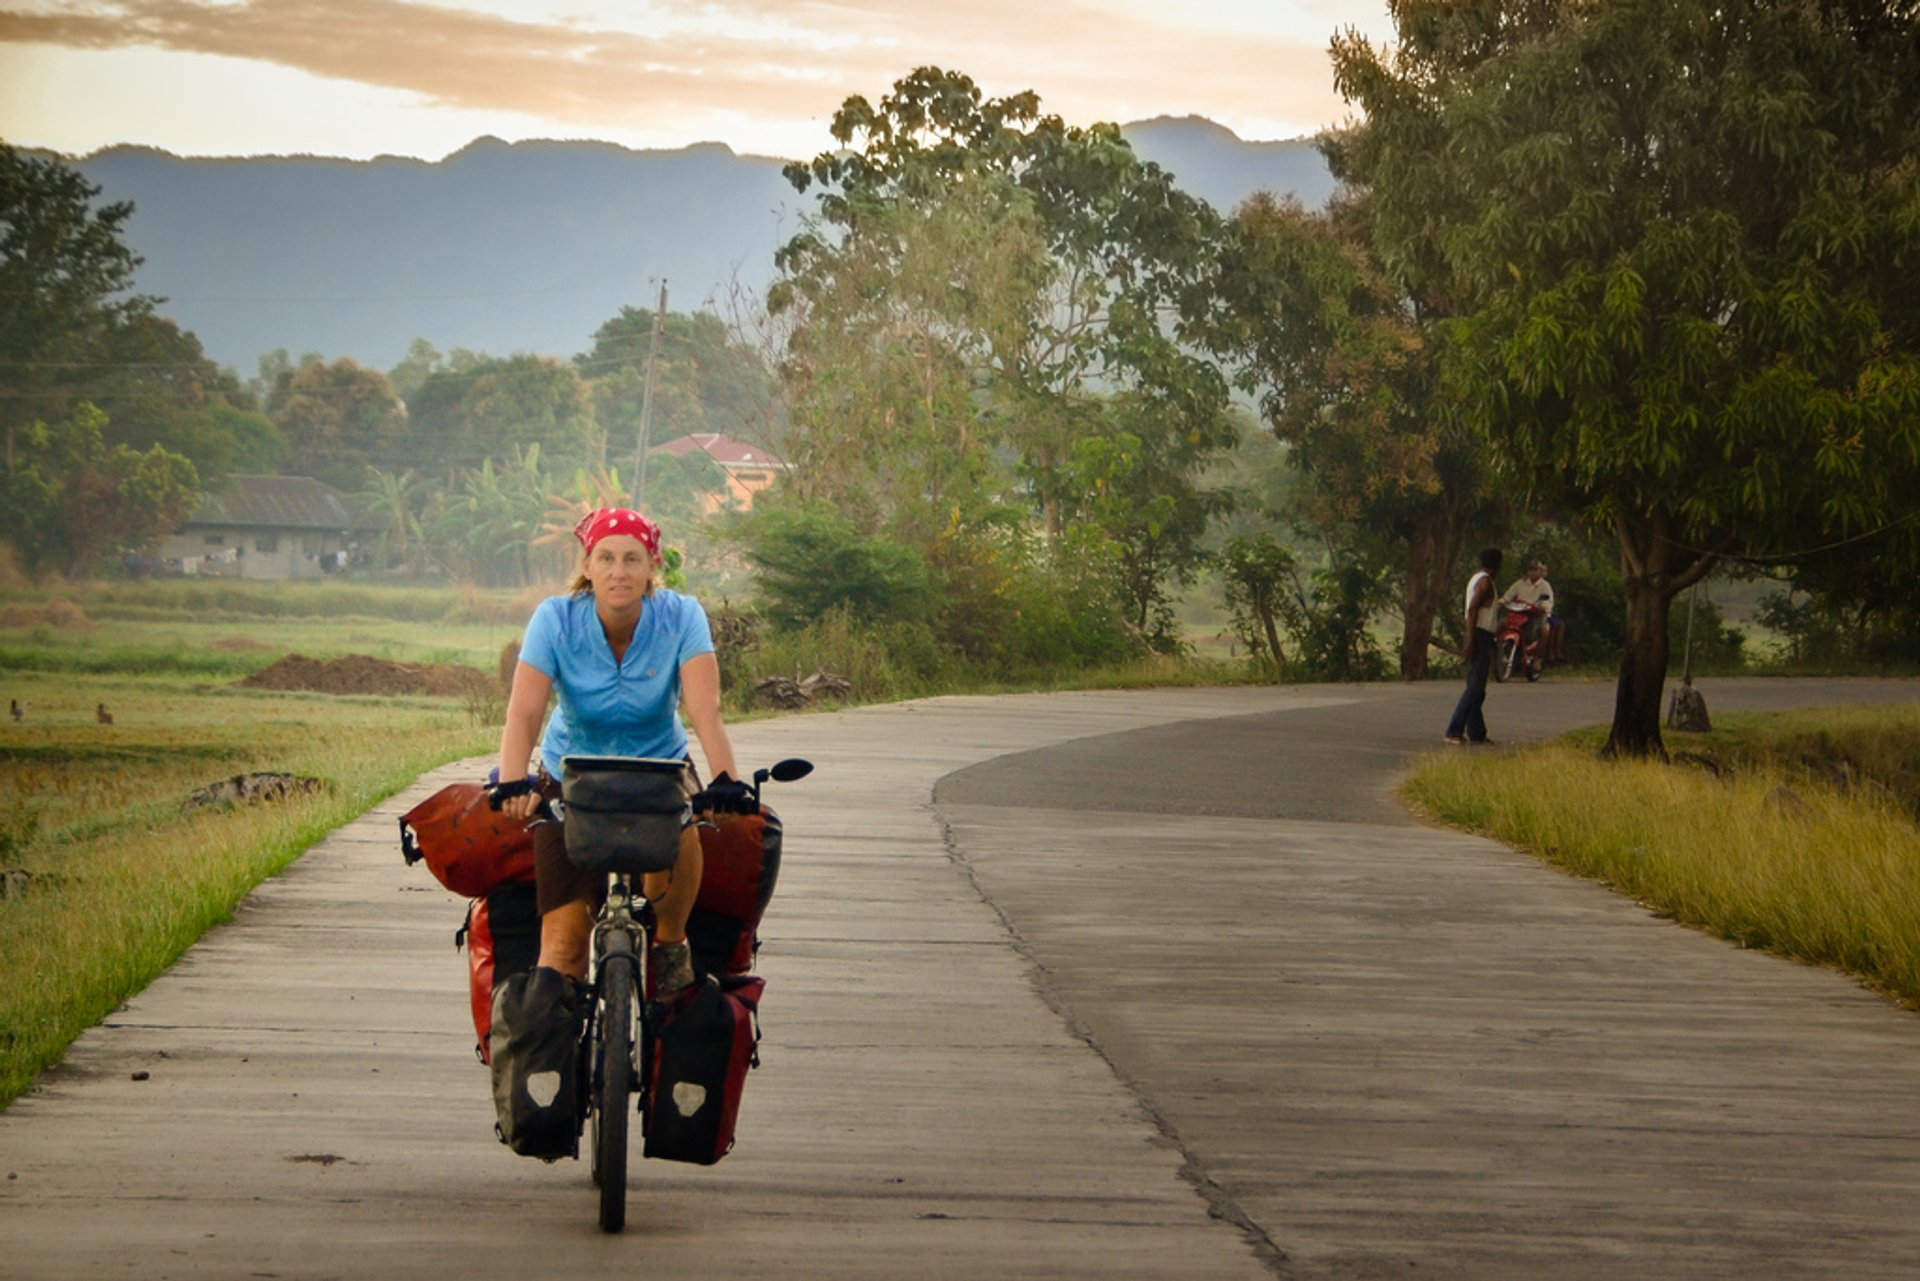 Cycling near Vigan, Philippines 2020